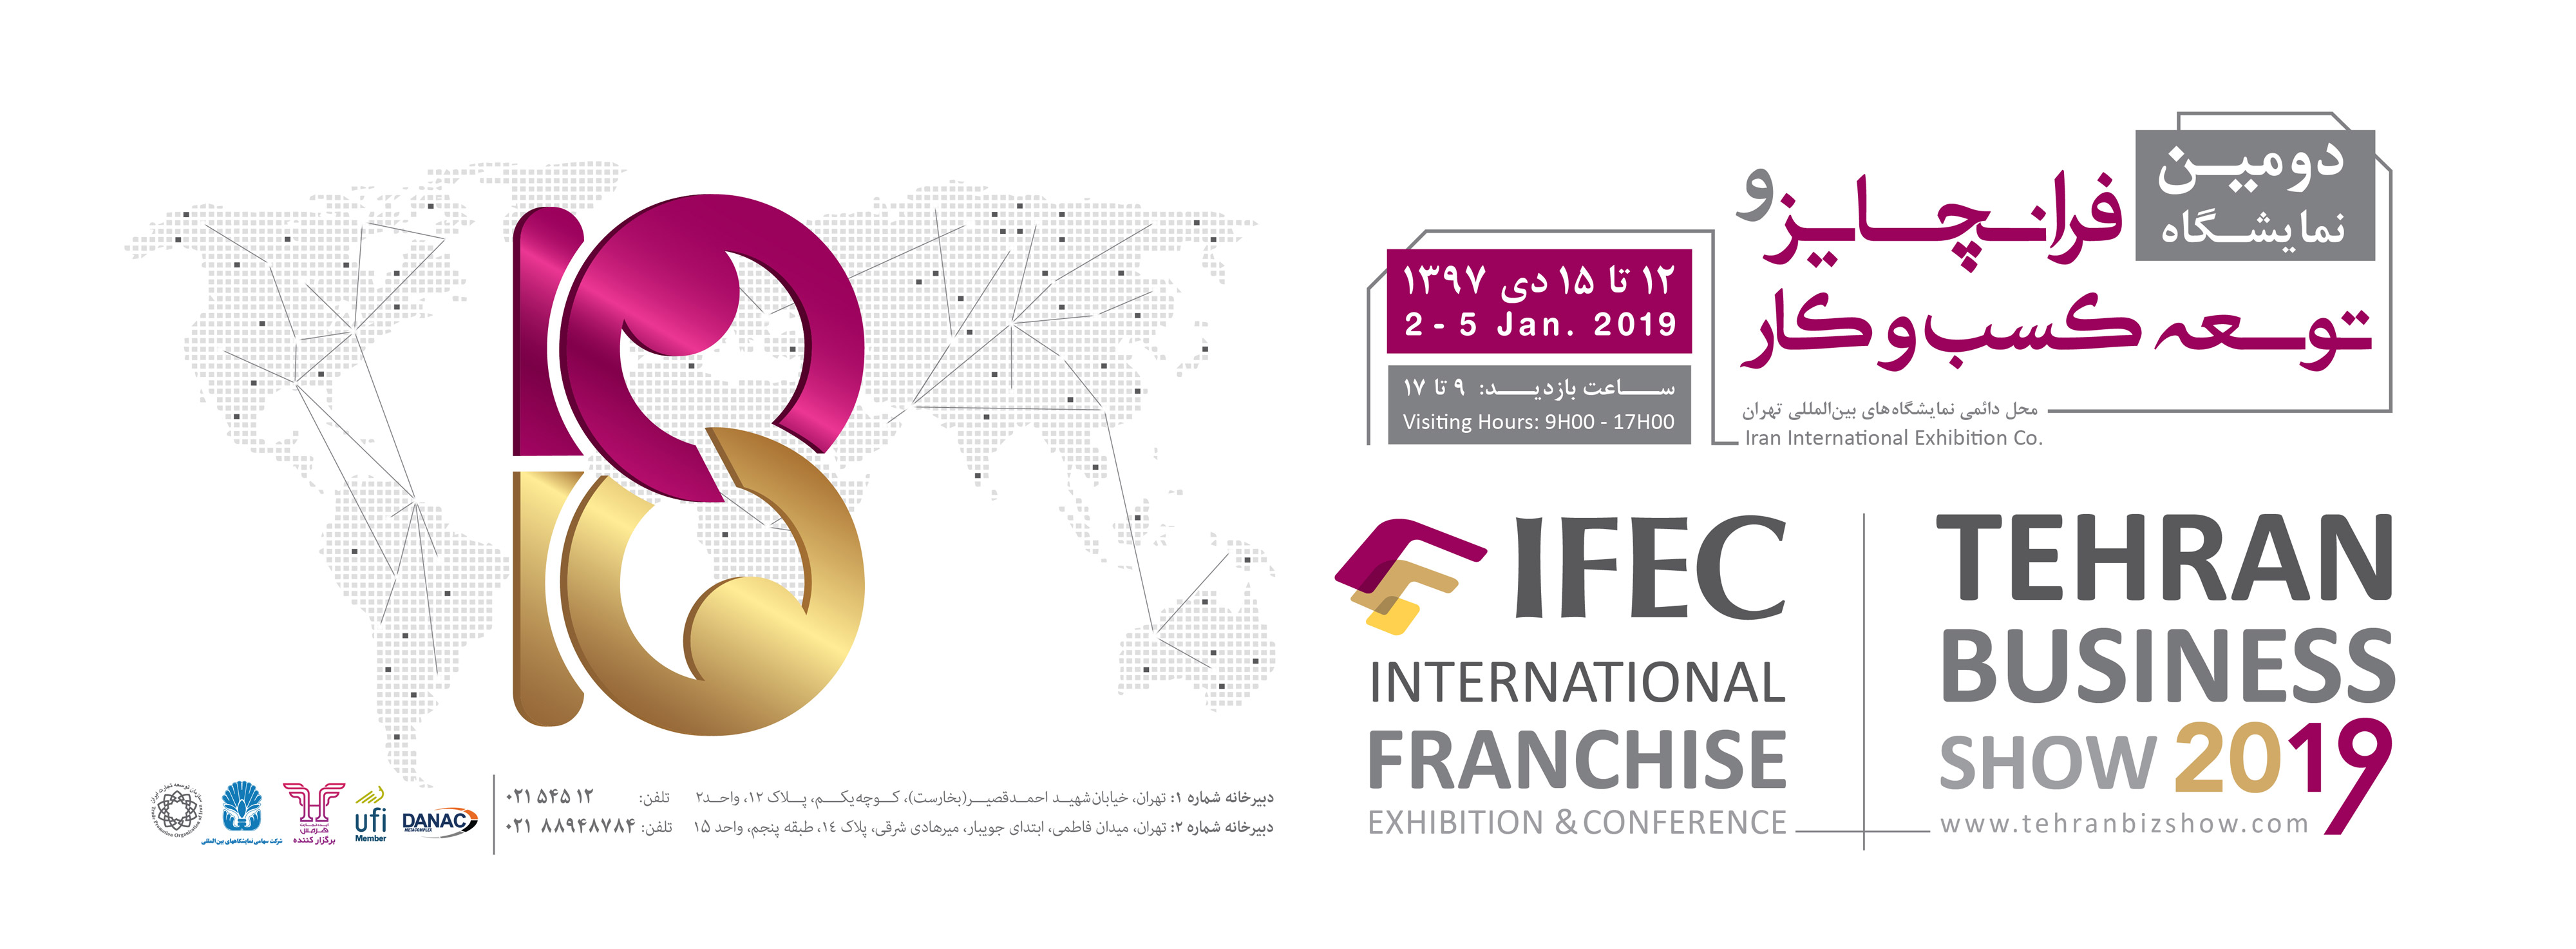 Official Video Preview of the Second Tehran Business Show & Franchise Conference